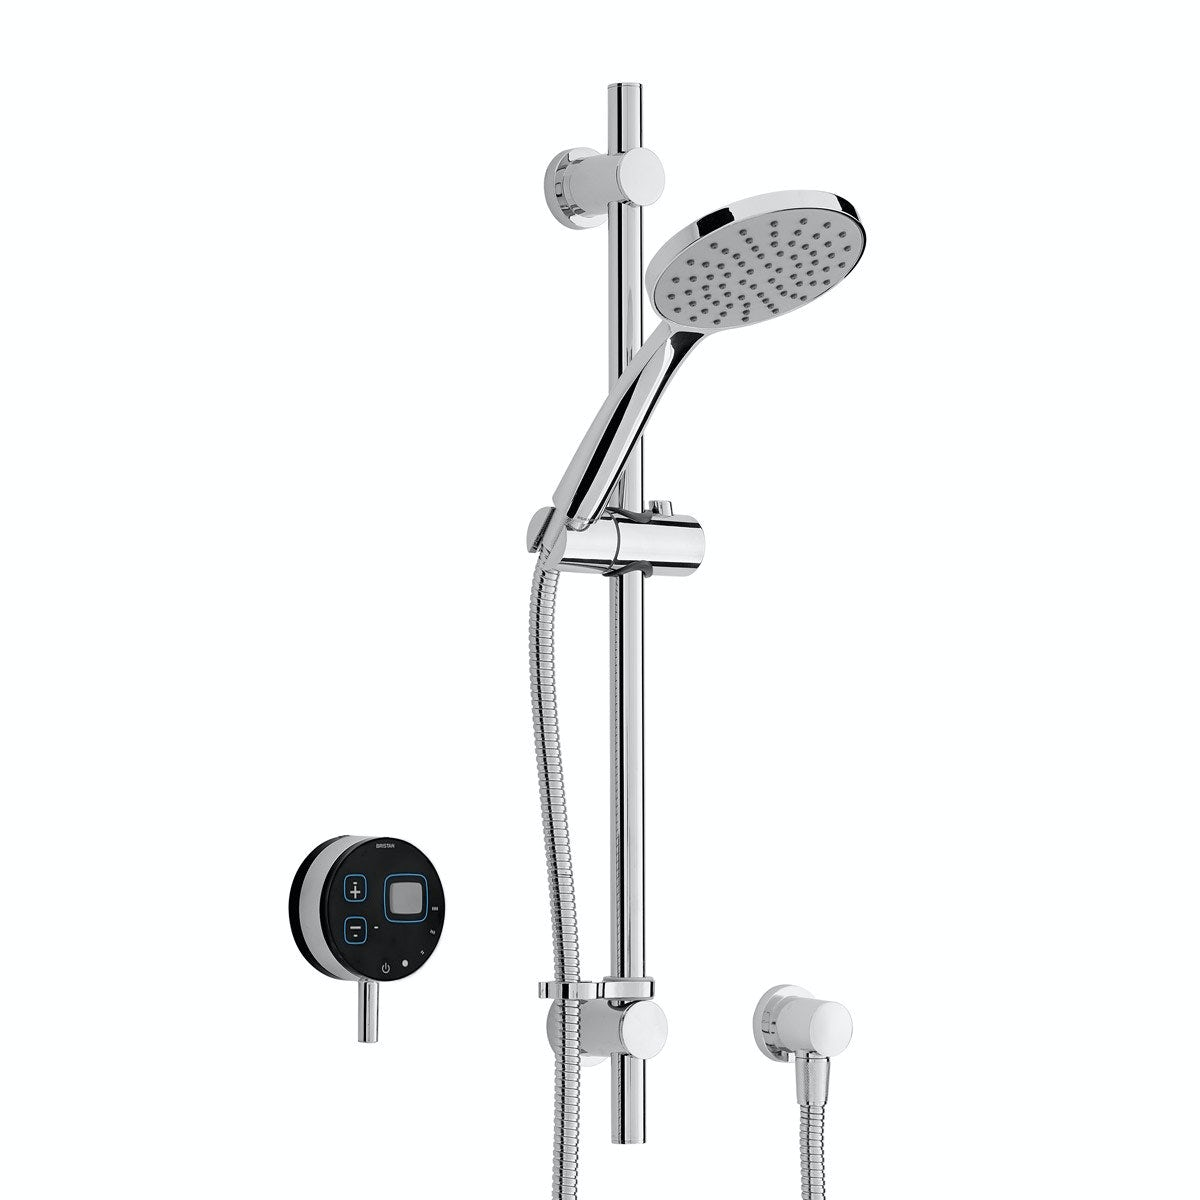 Bristan Artisan Evo digital shower with slider rail kit black